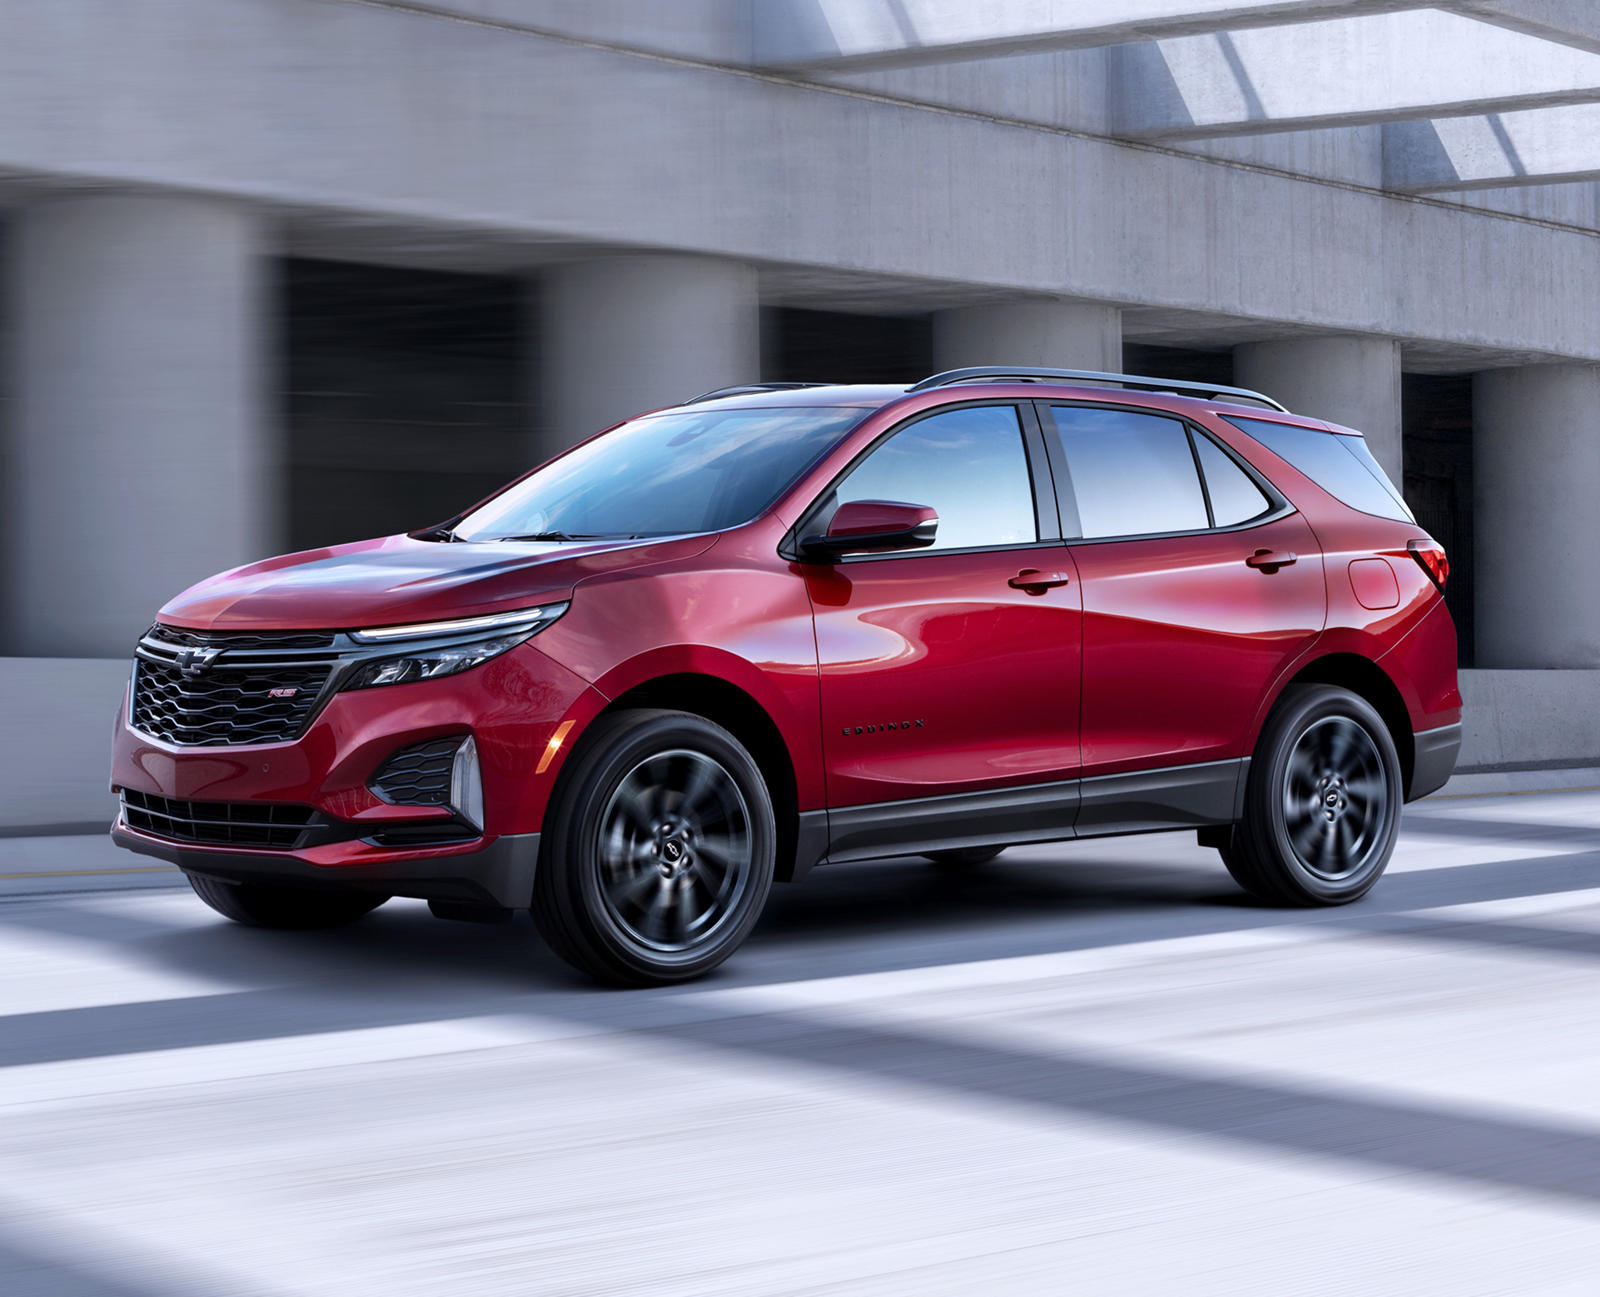 2021 Chevy Equinox Price, Design and Review